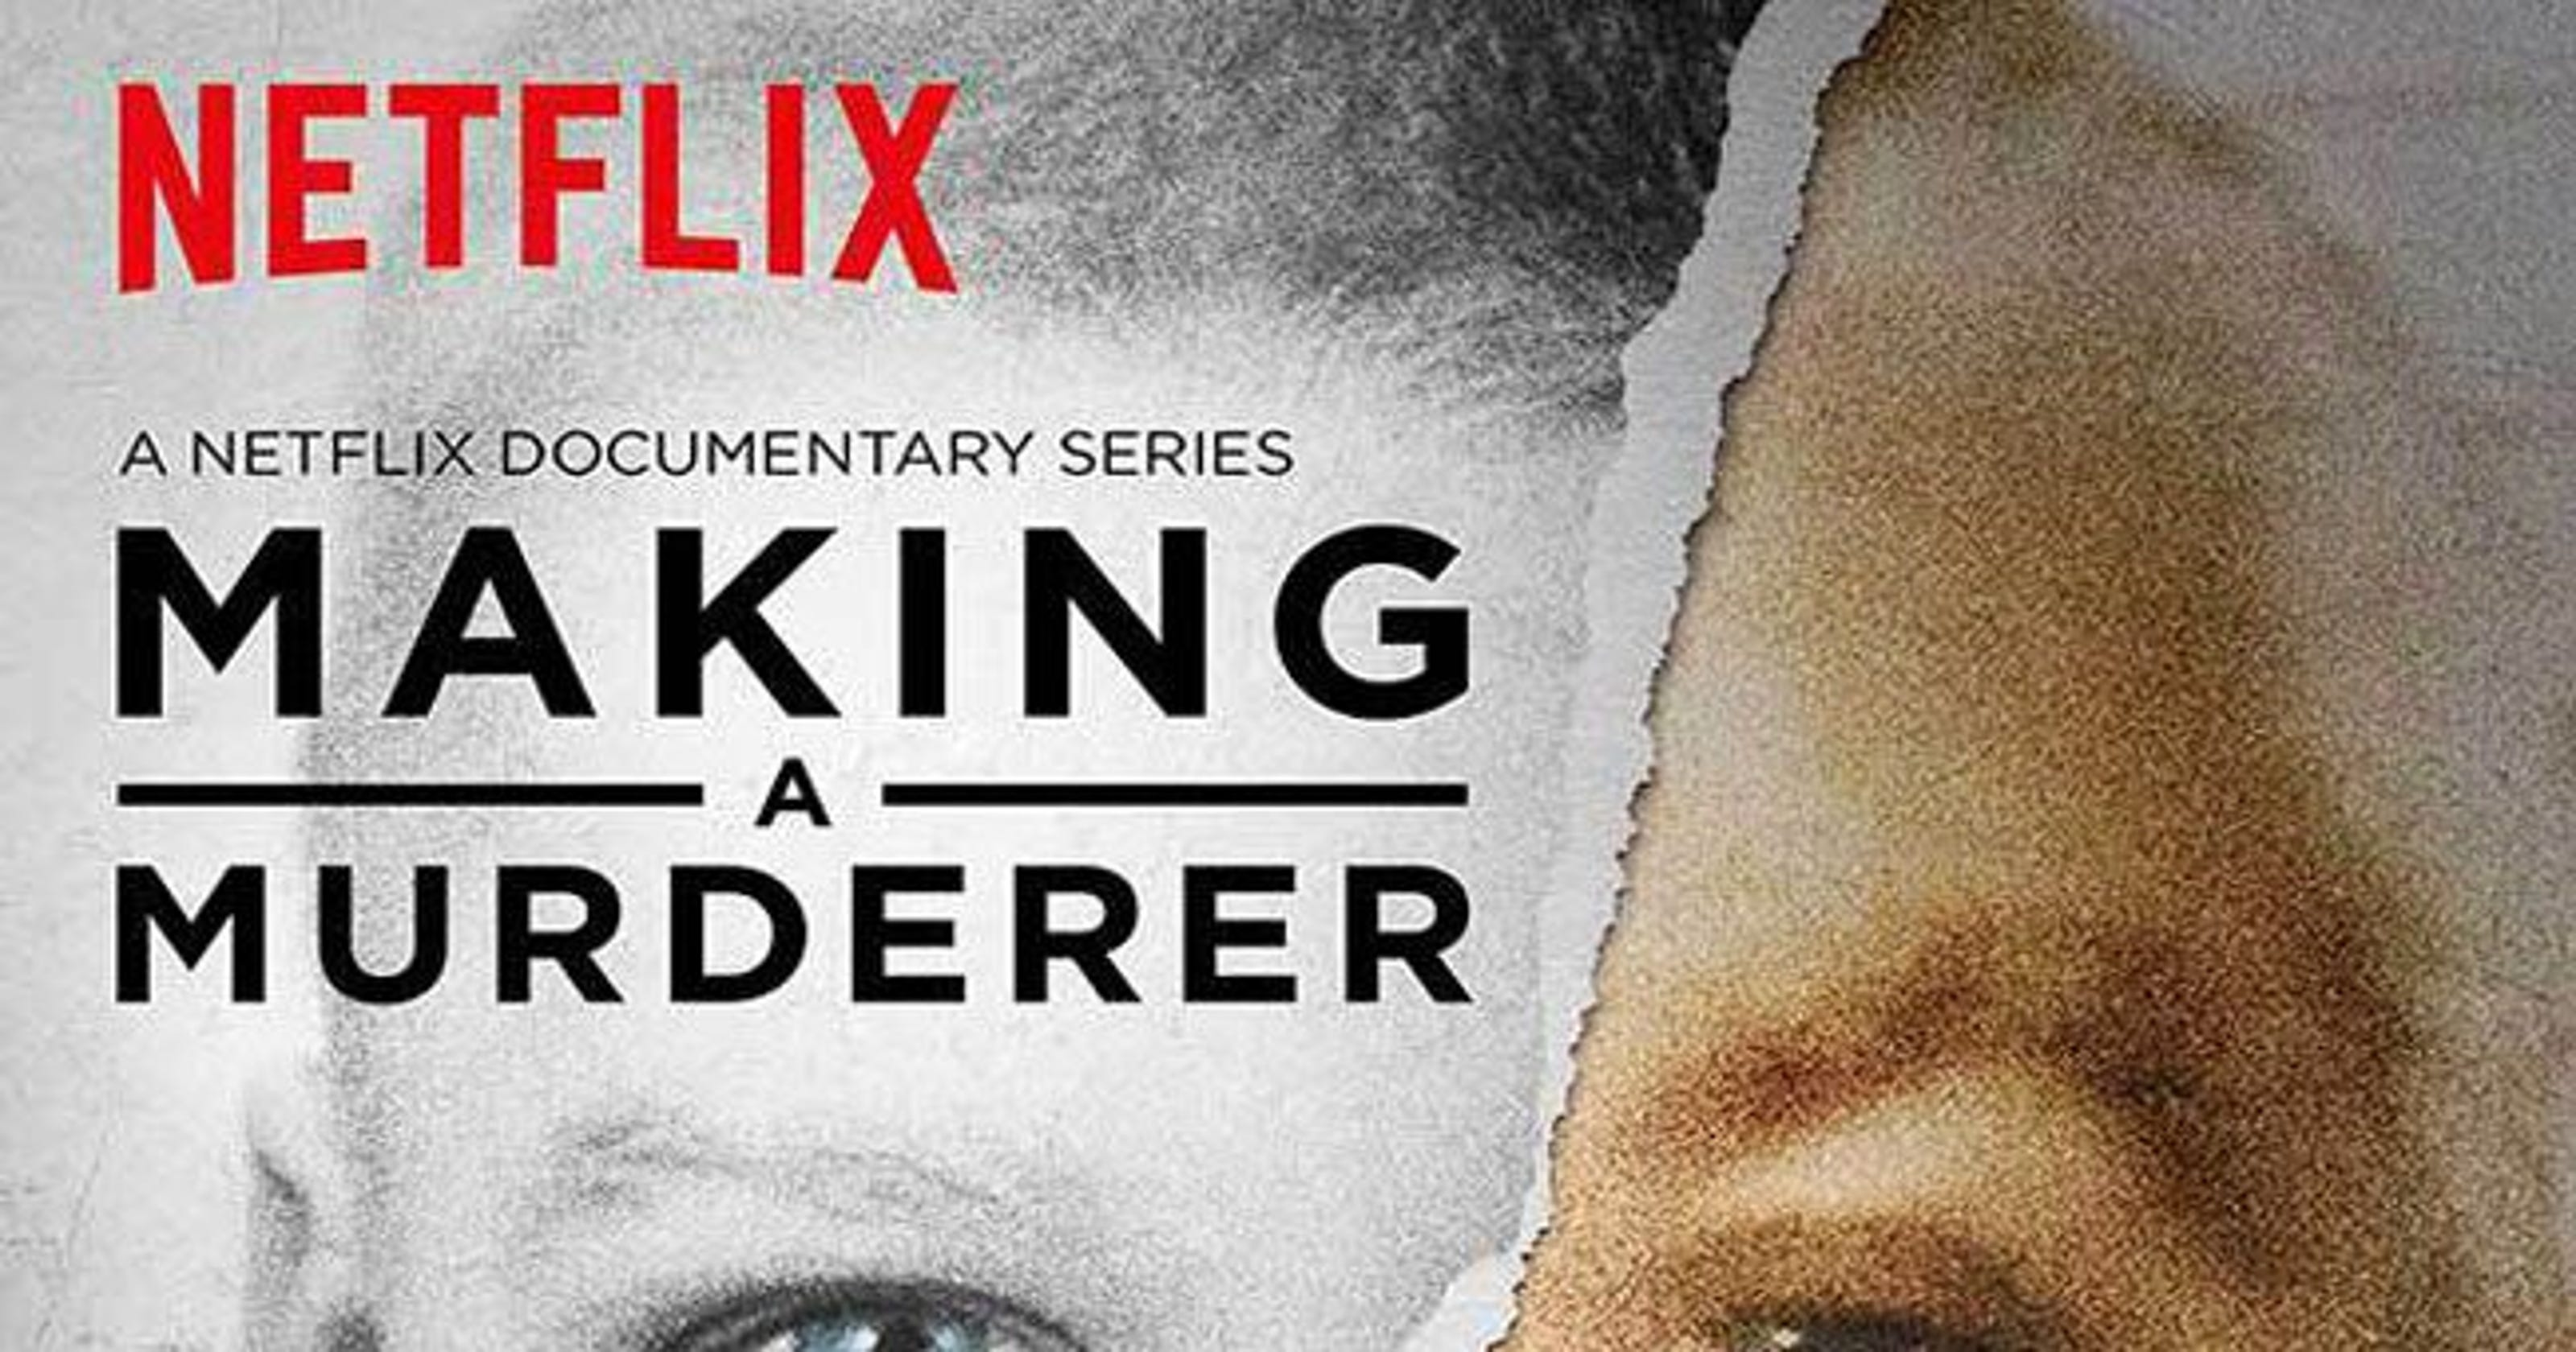 Netflix official talks \'Making a Murderer 2\' with USA Today reporter